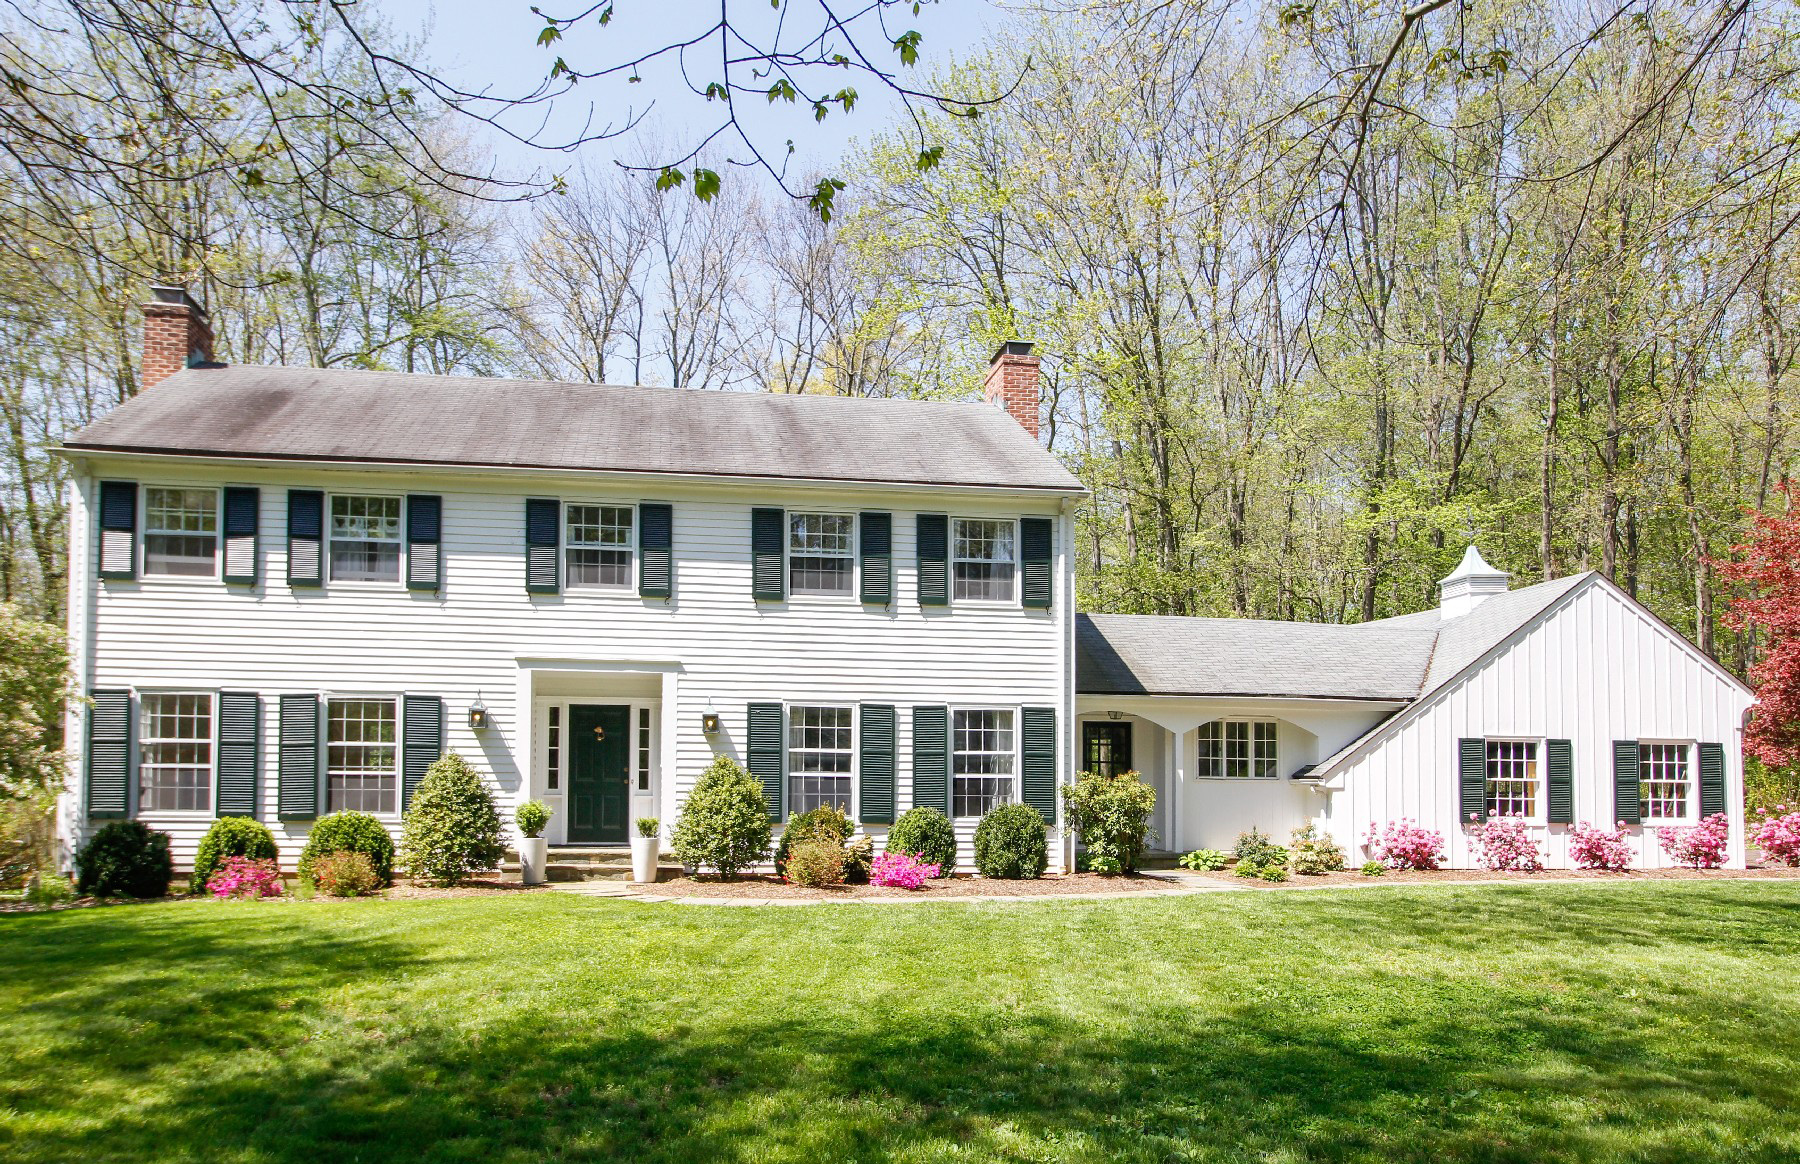 Single Family Home for Sale at Stately Center Hall Colonial 10 Pilgrim Road Darien, Connecticut, 06820 United States